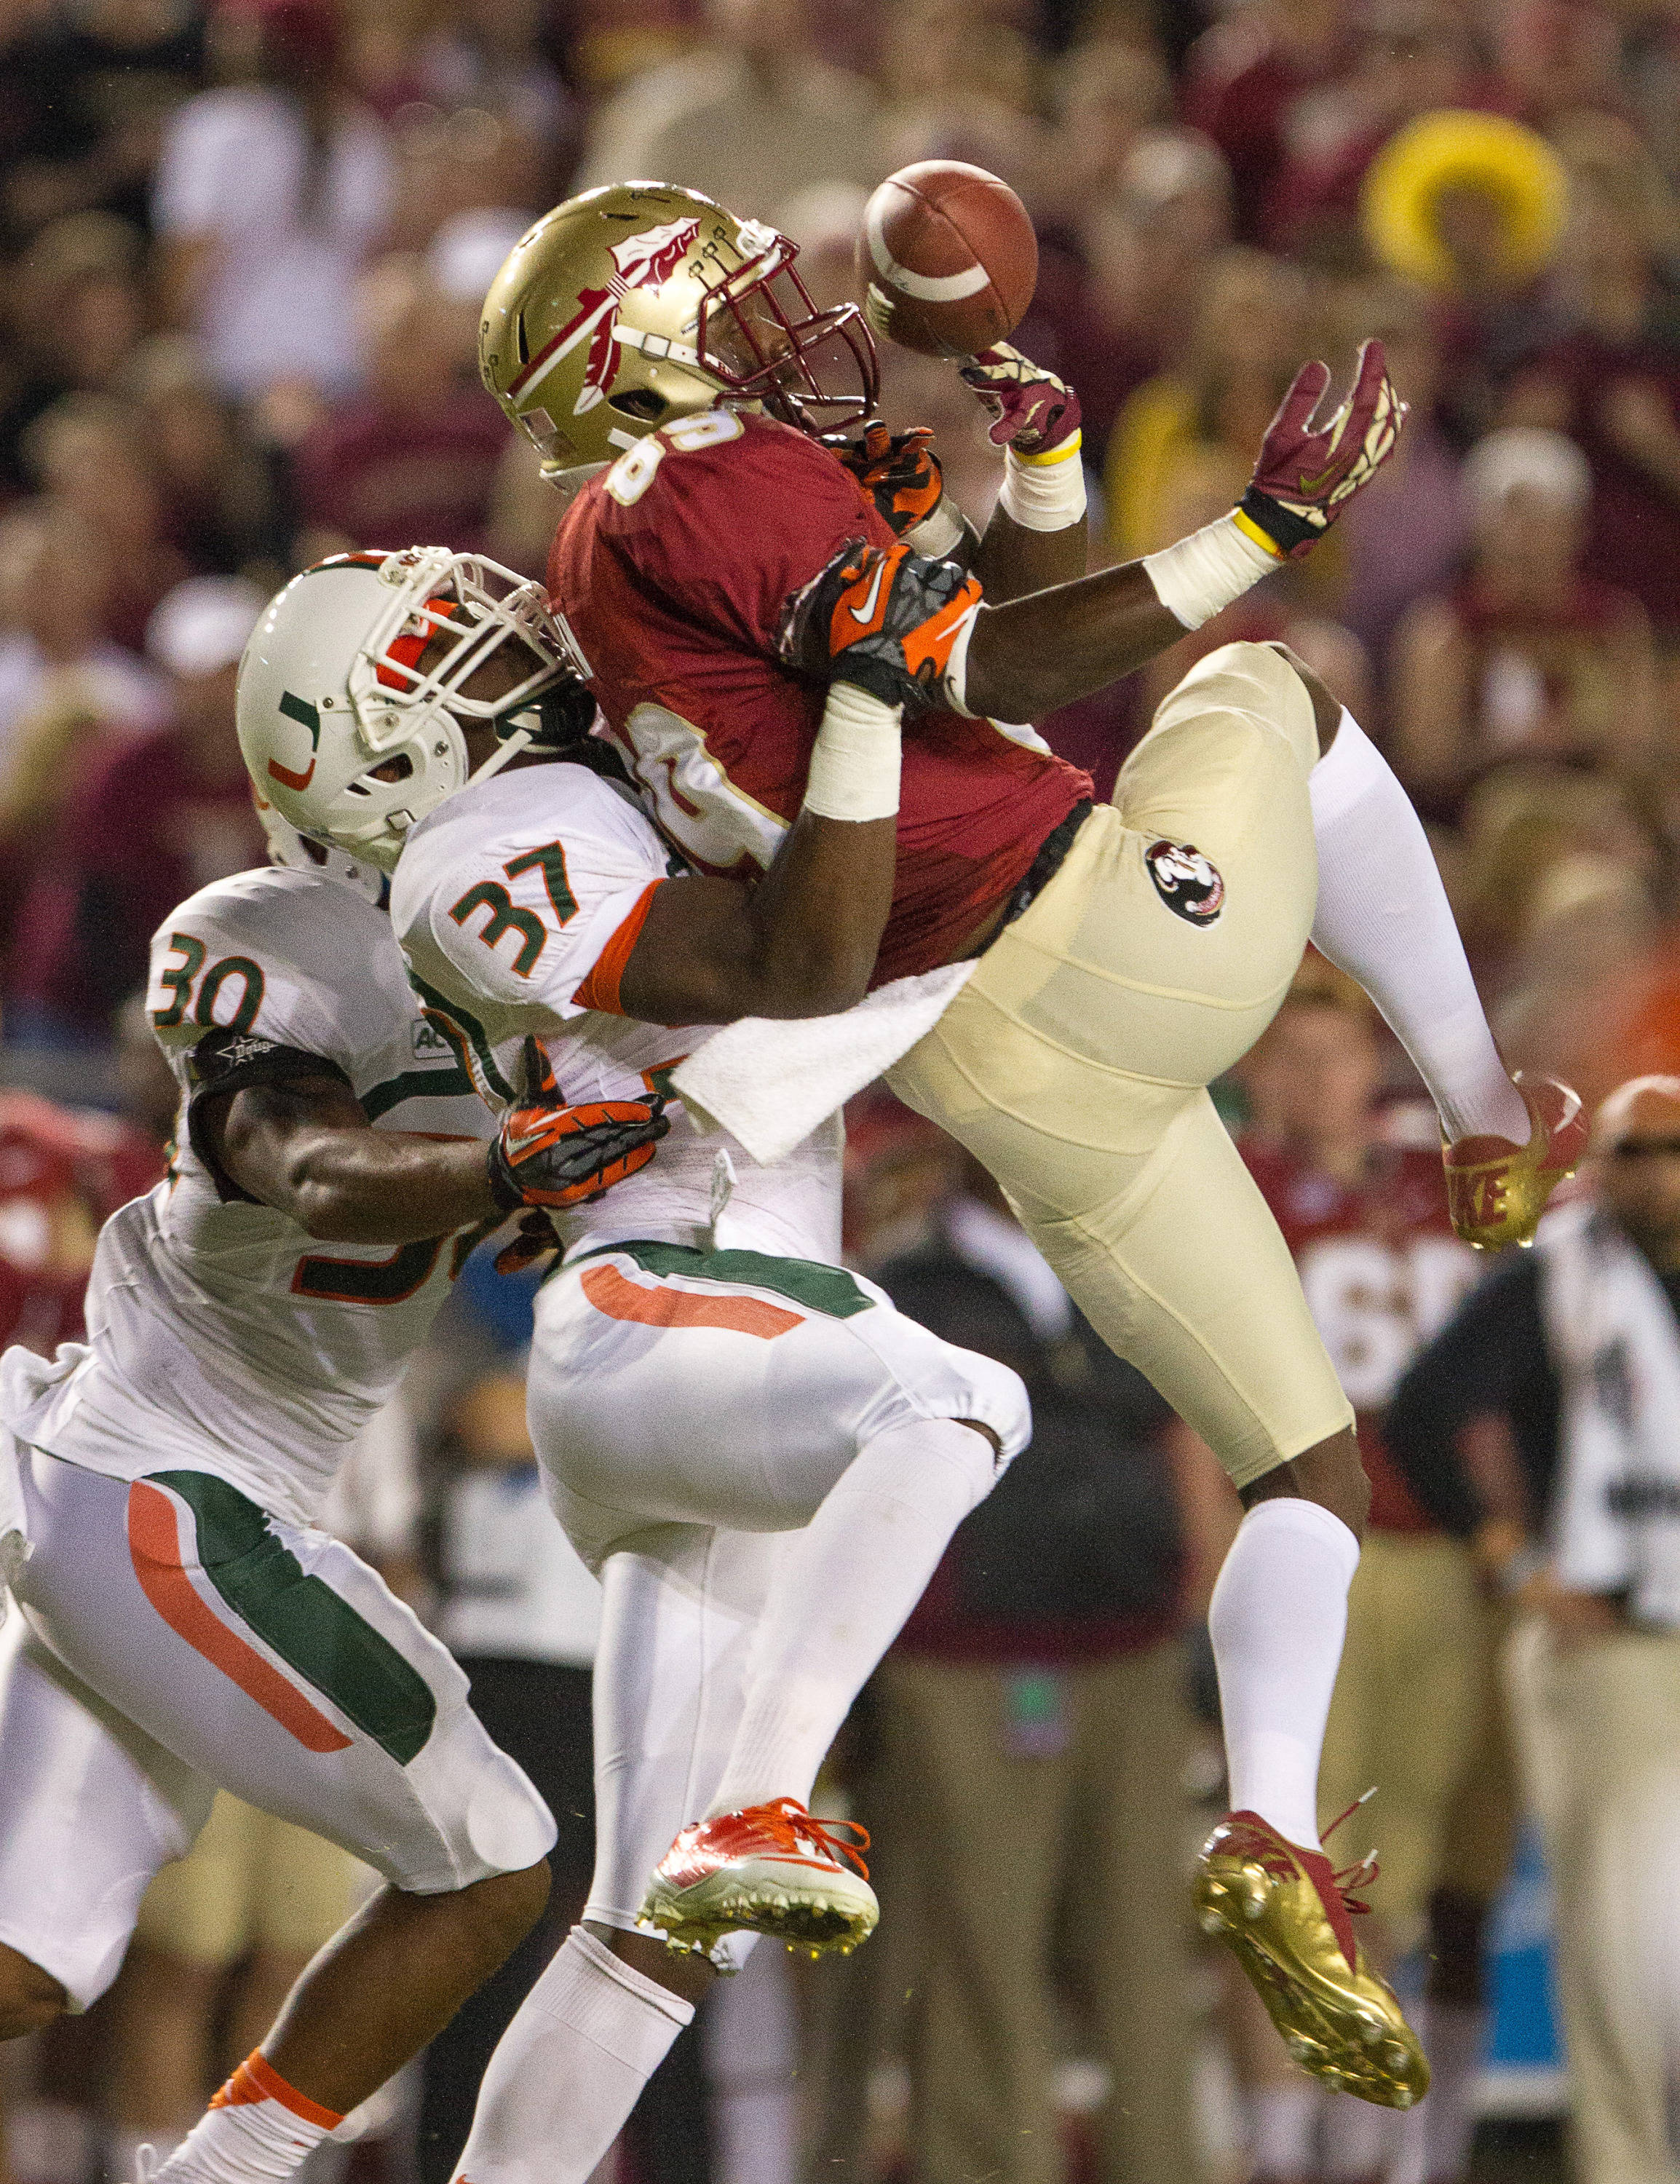 Christian Green (89) attempts to make a reception during FSU football's 41-14 win over Miami on Saturday, November 2, 2013 in Tallahassee, Fla. Photo by Michael Schwarz.